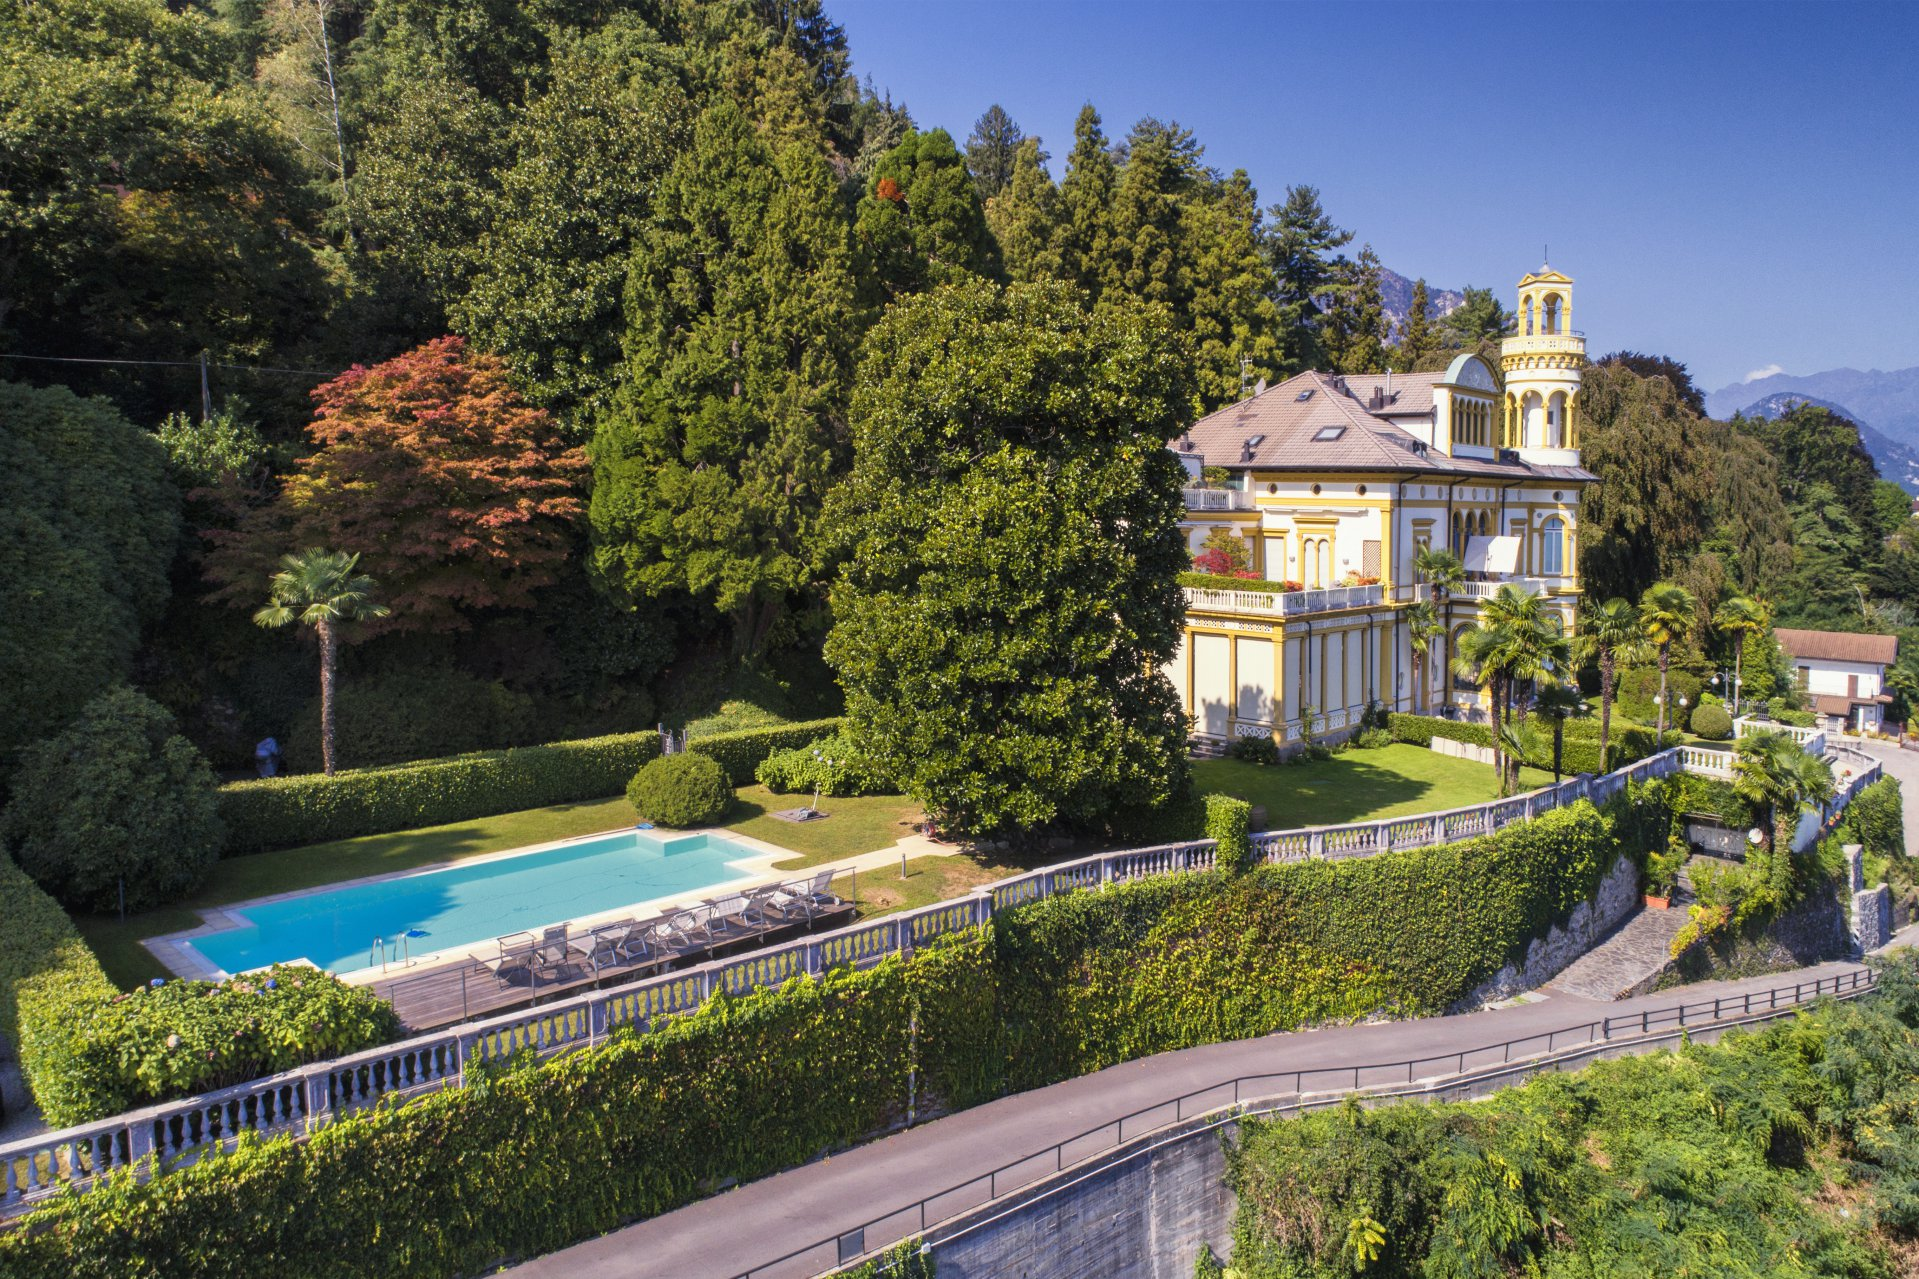 Apartment for sale in historic villa in Baveno - villa with swimming pool